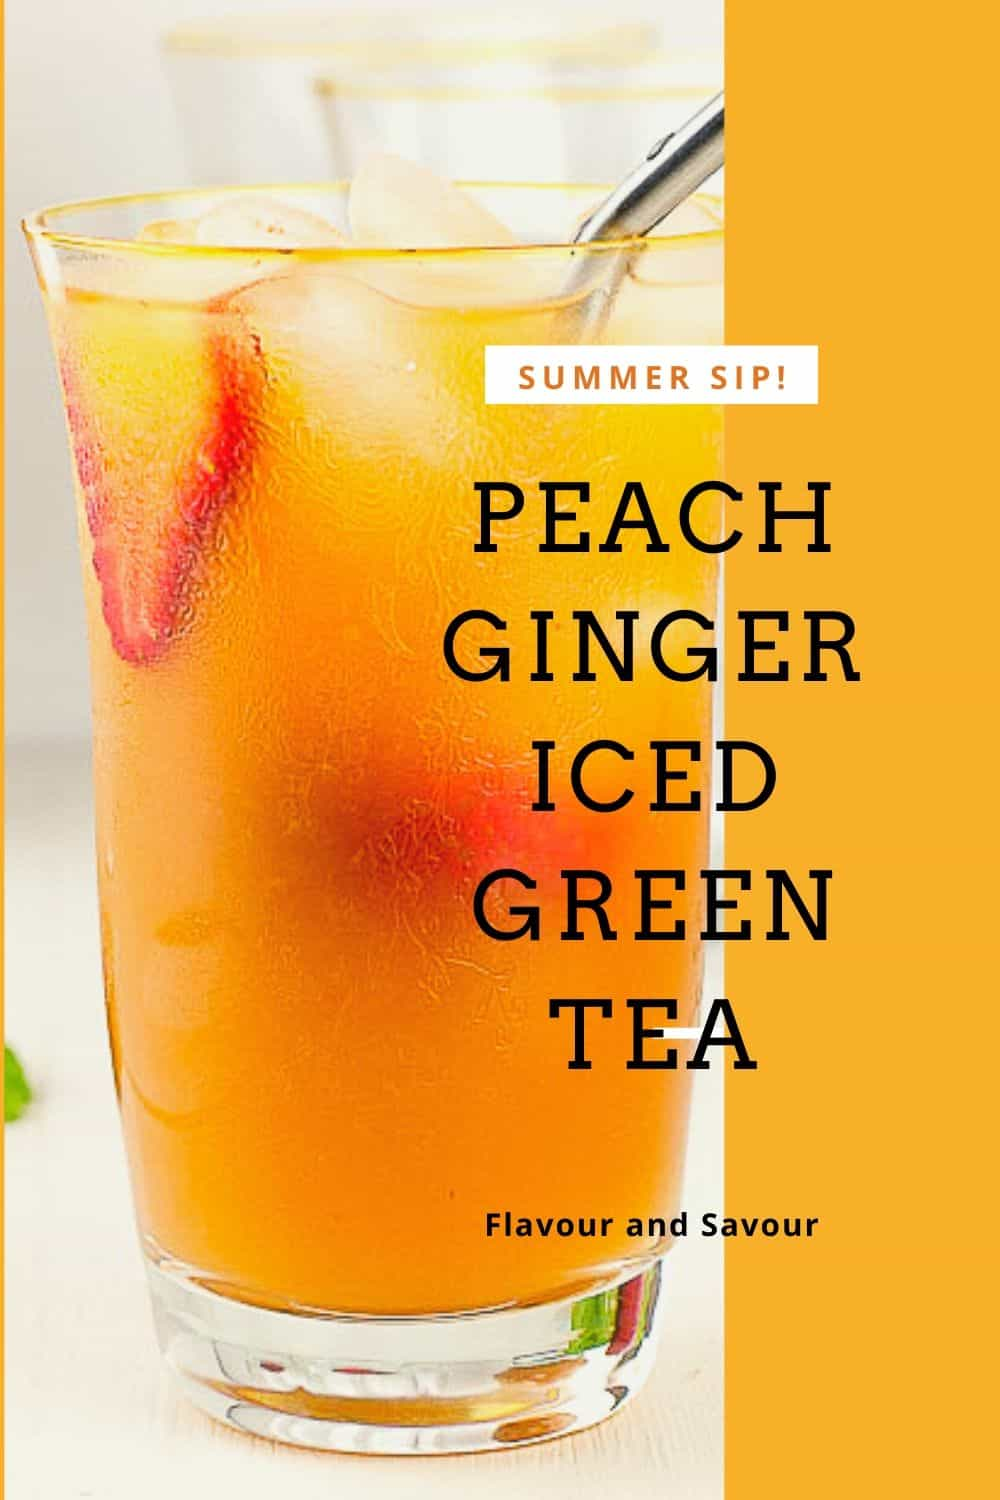 Pinterest pin for Peach Ginger Iced Green Tea with text overlay